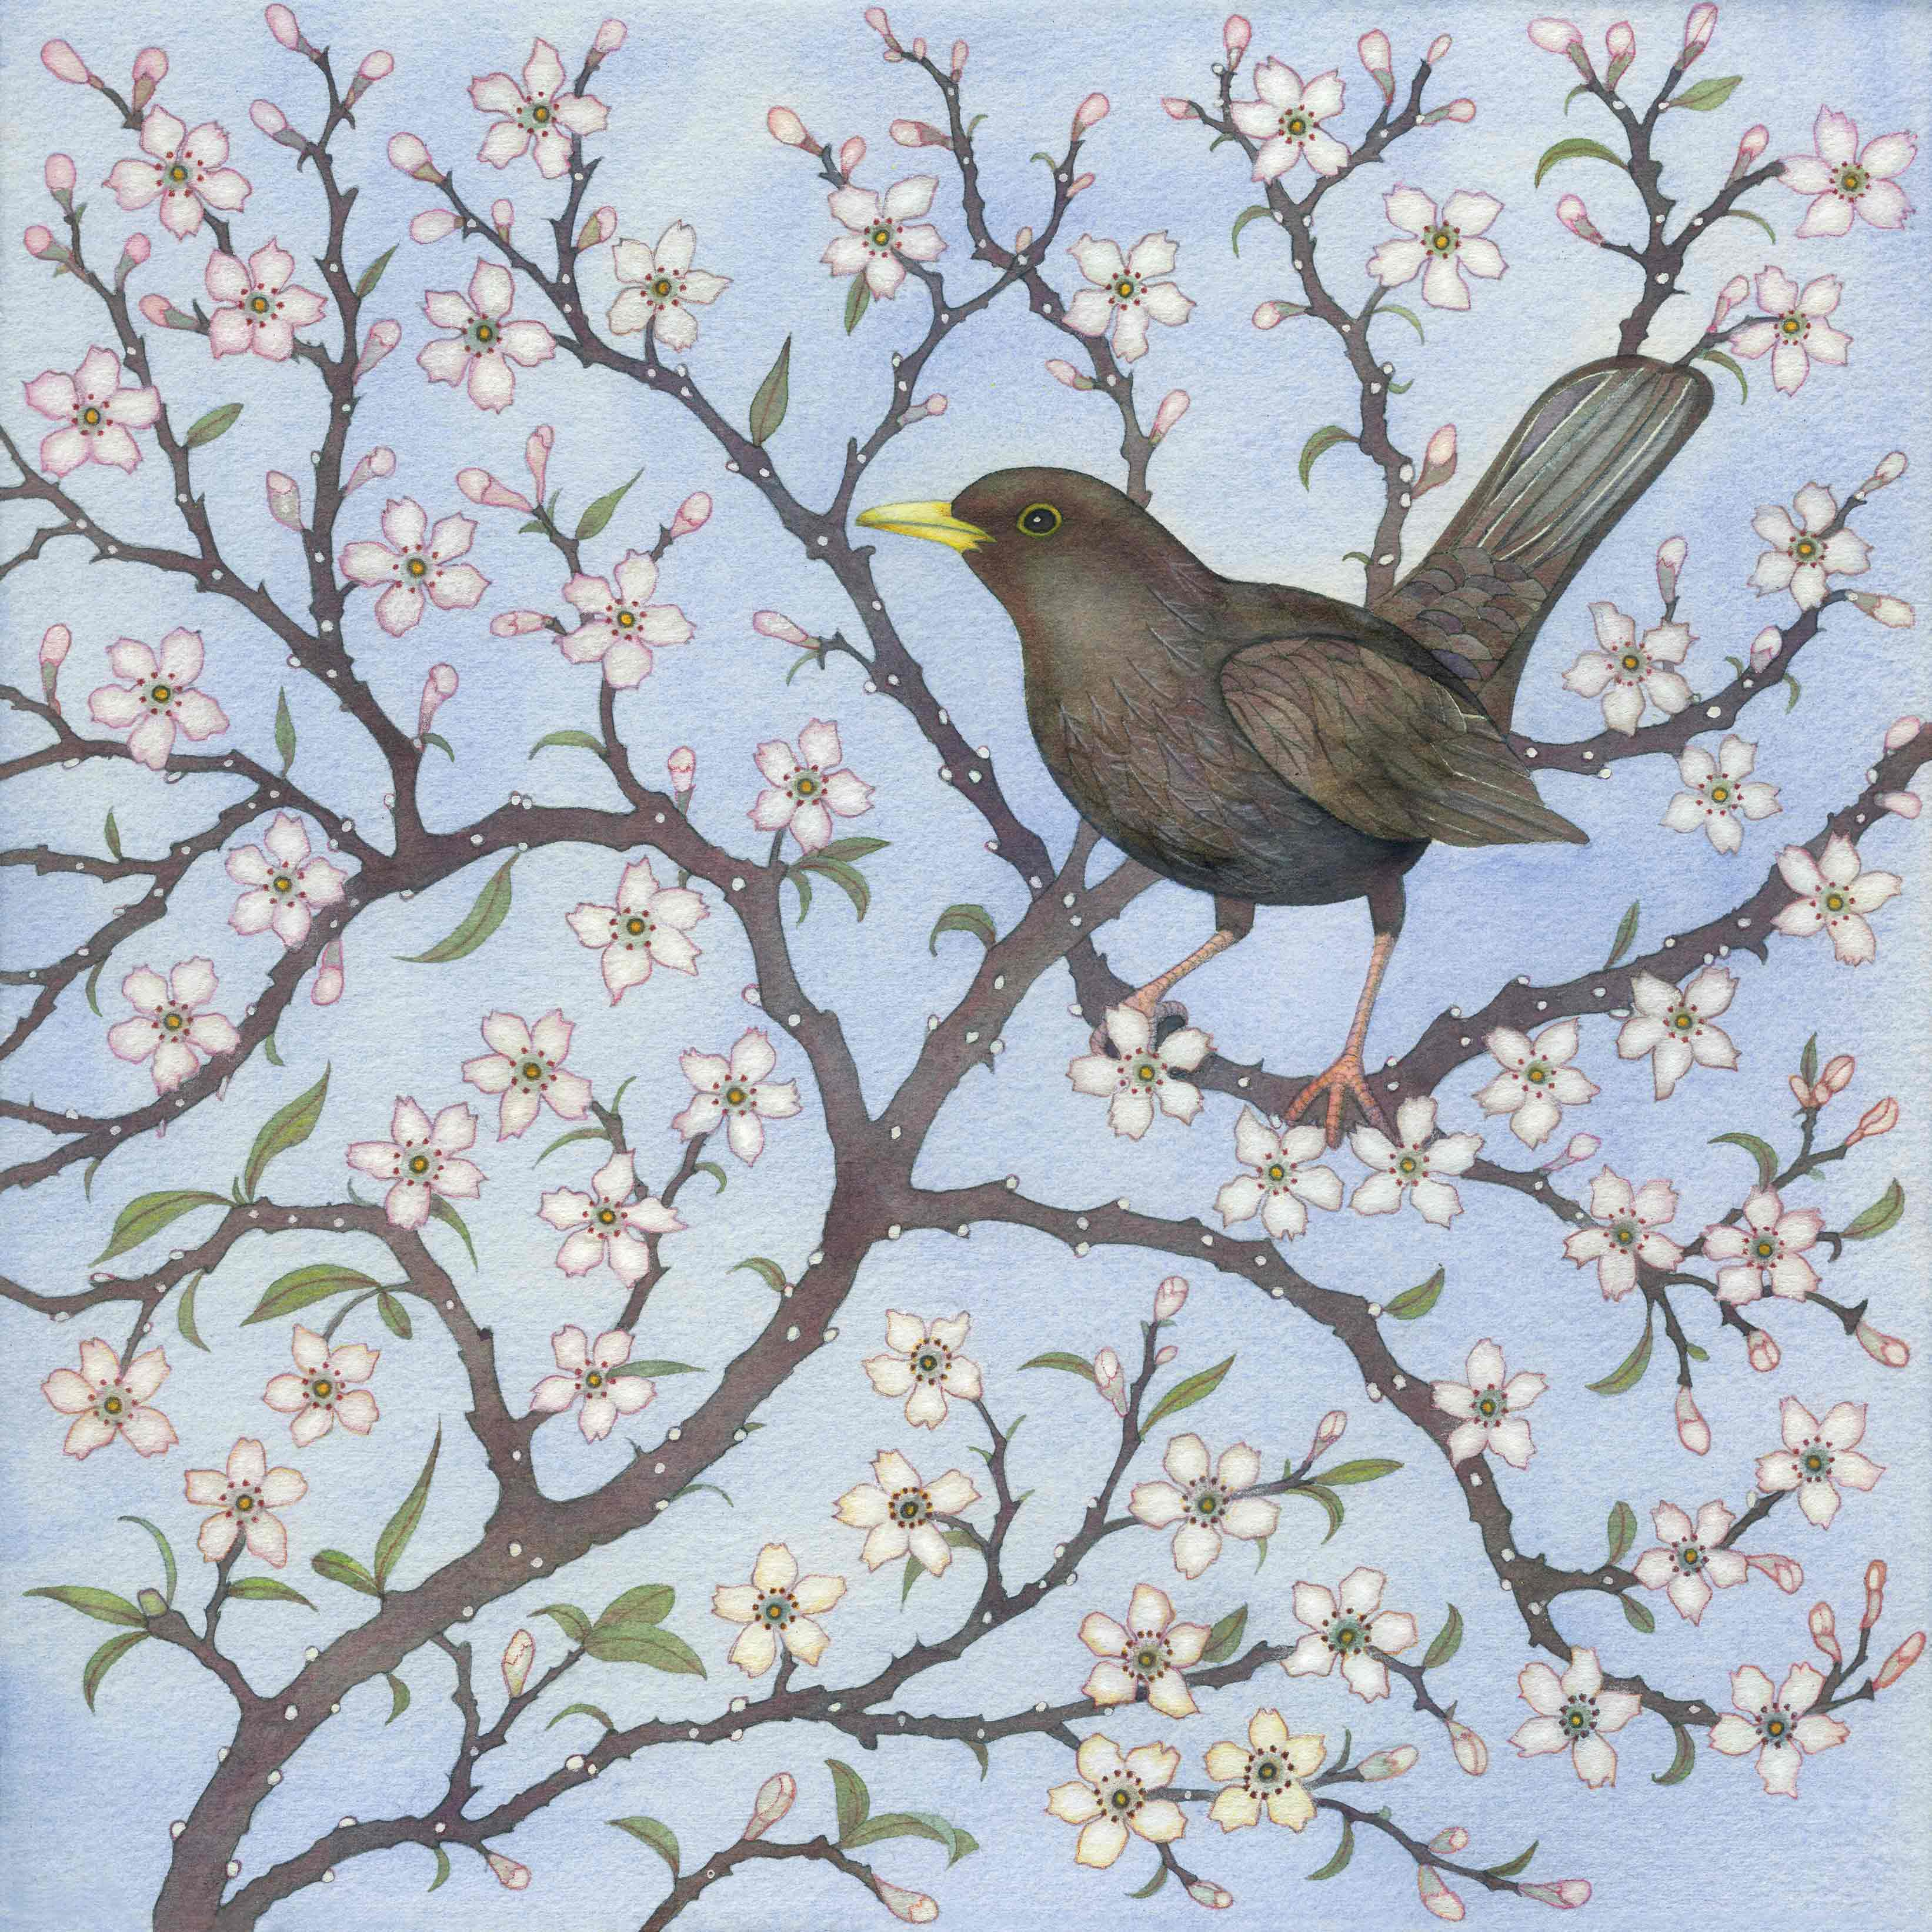 Fine Art Greeting Card by Kate Green, Mixed Media, Blackbird in the blossom